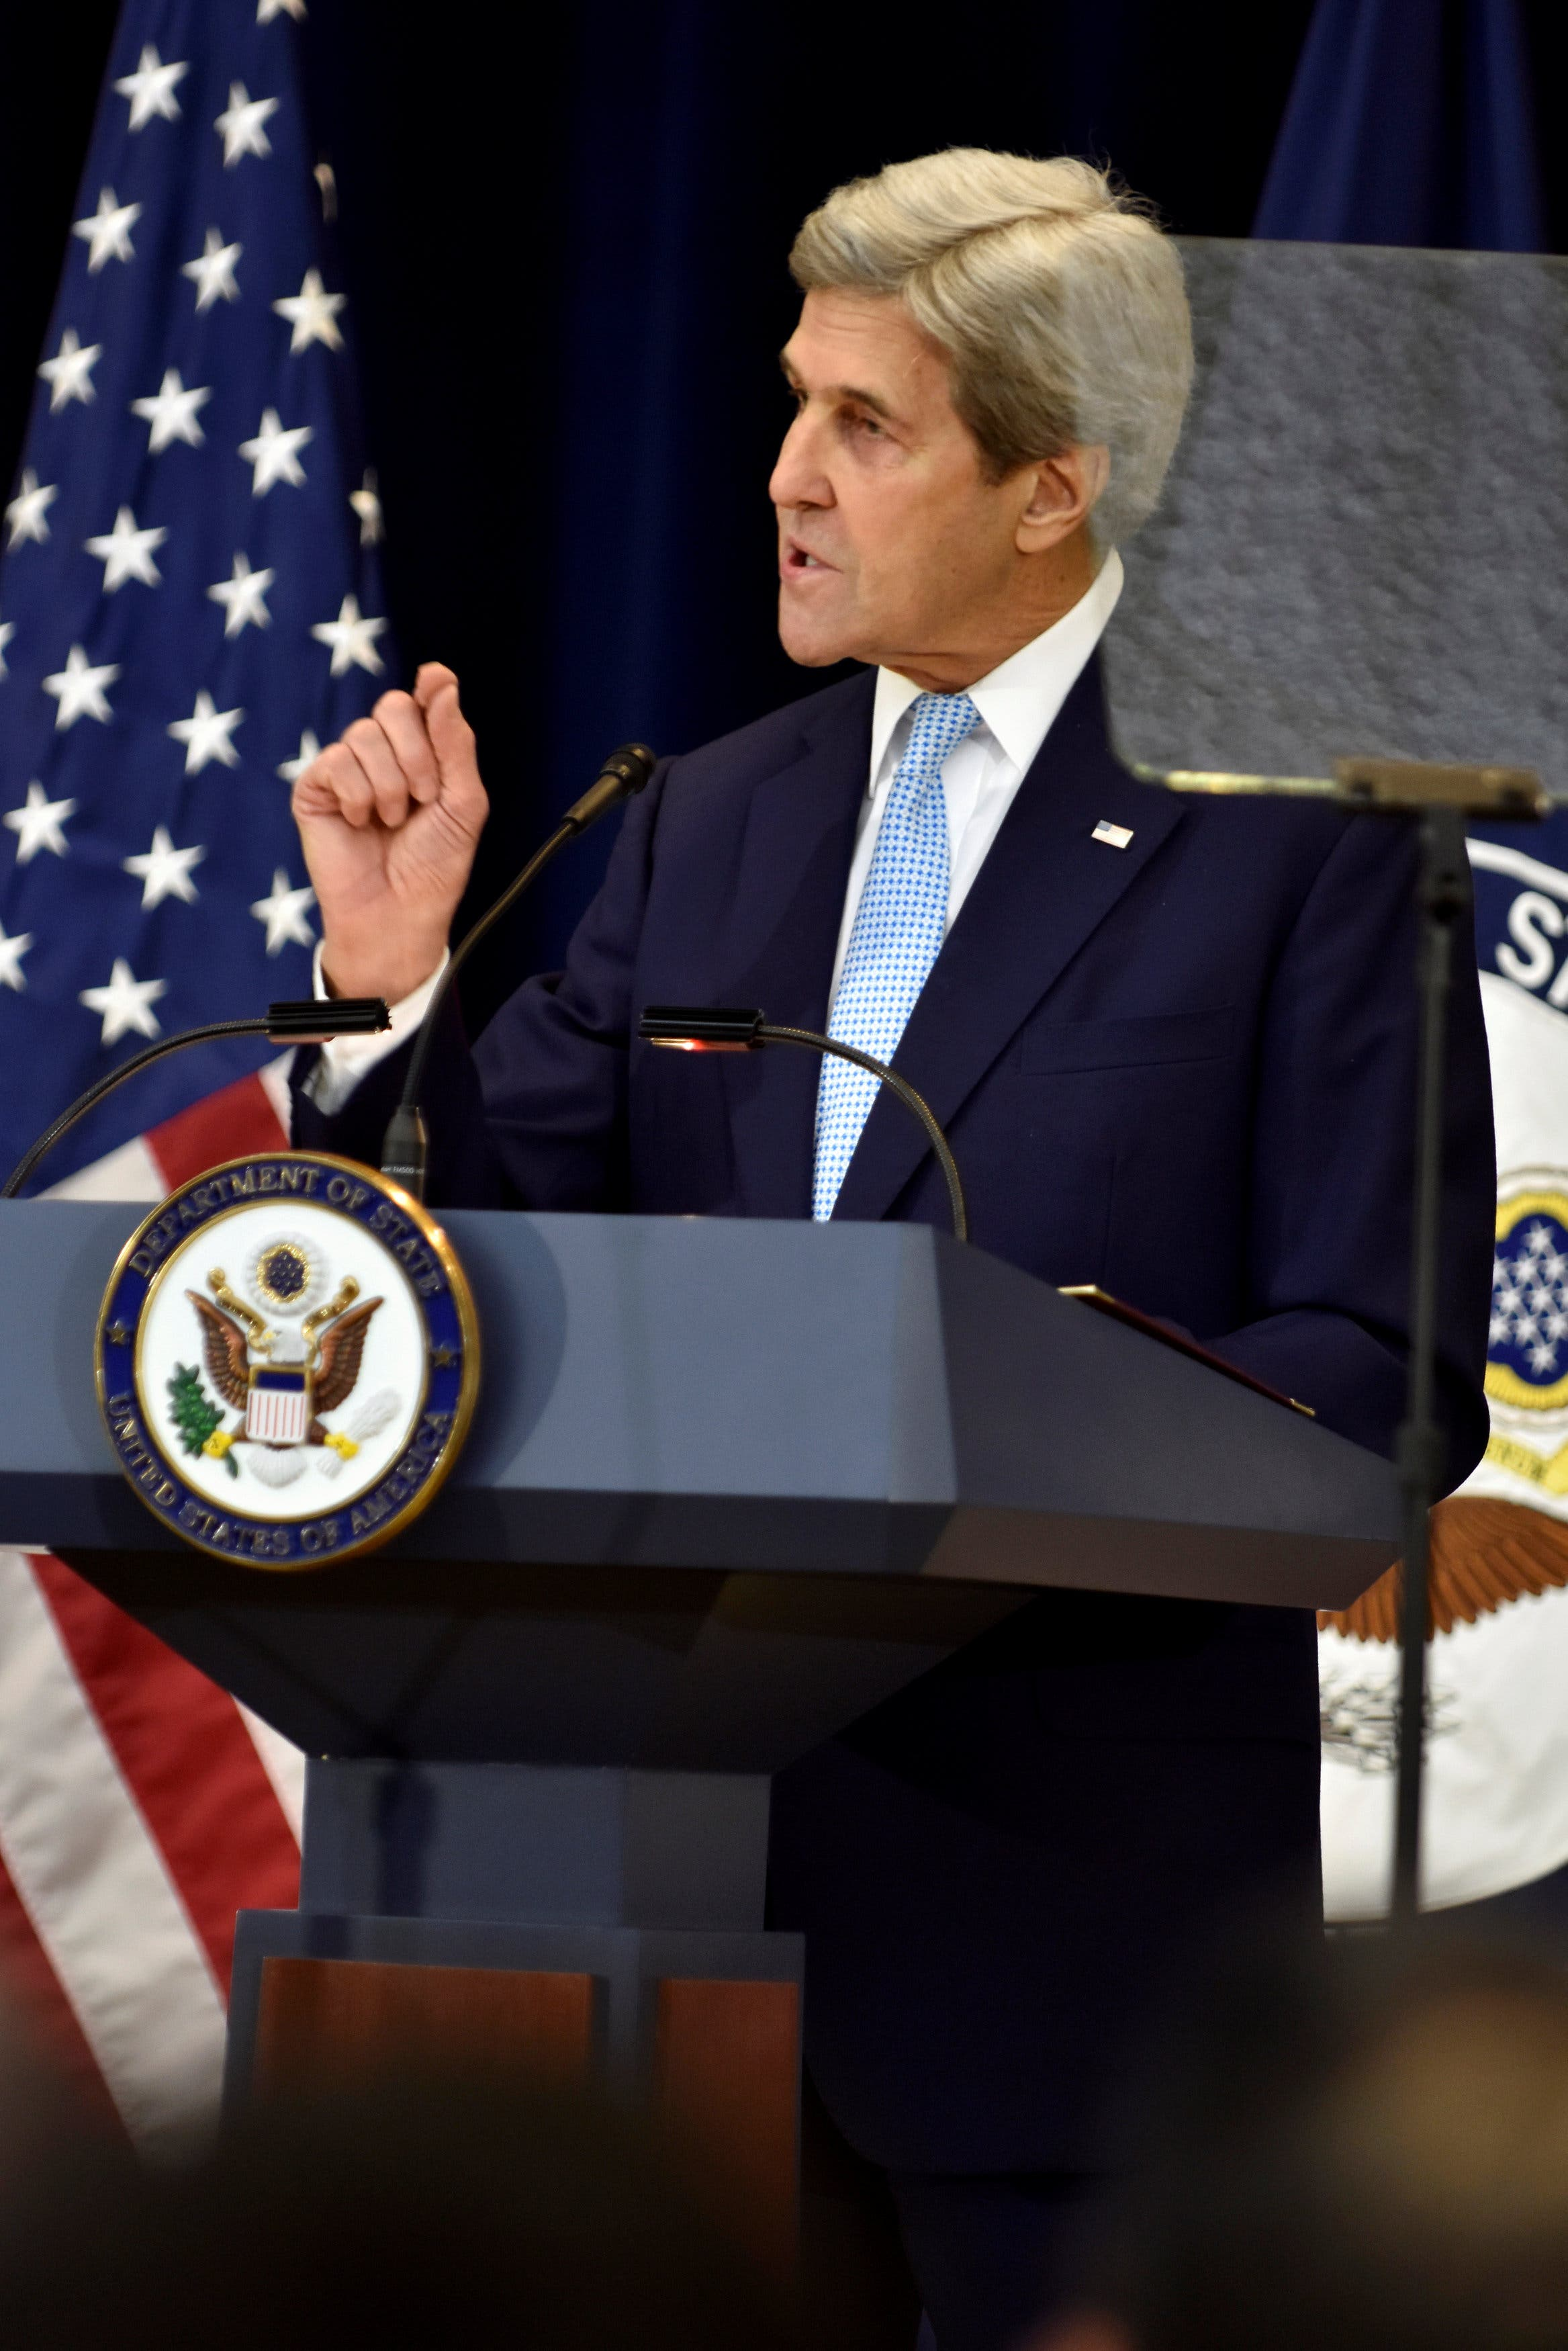 US Secretary of State John Kerry delivers remarks on Middle East peace at the Department of State in Washington, Dec. 28, 2016. (AP)